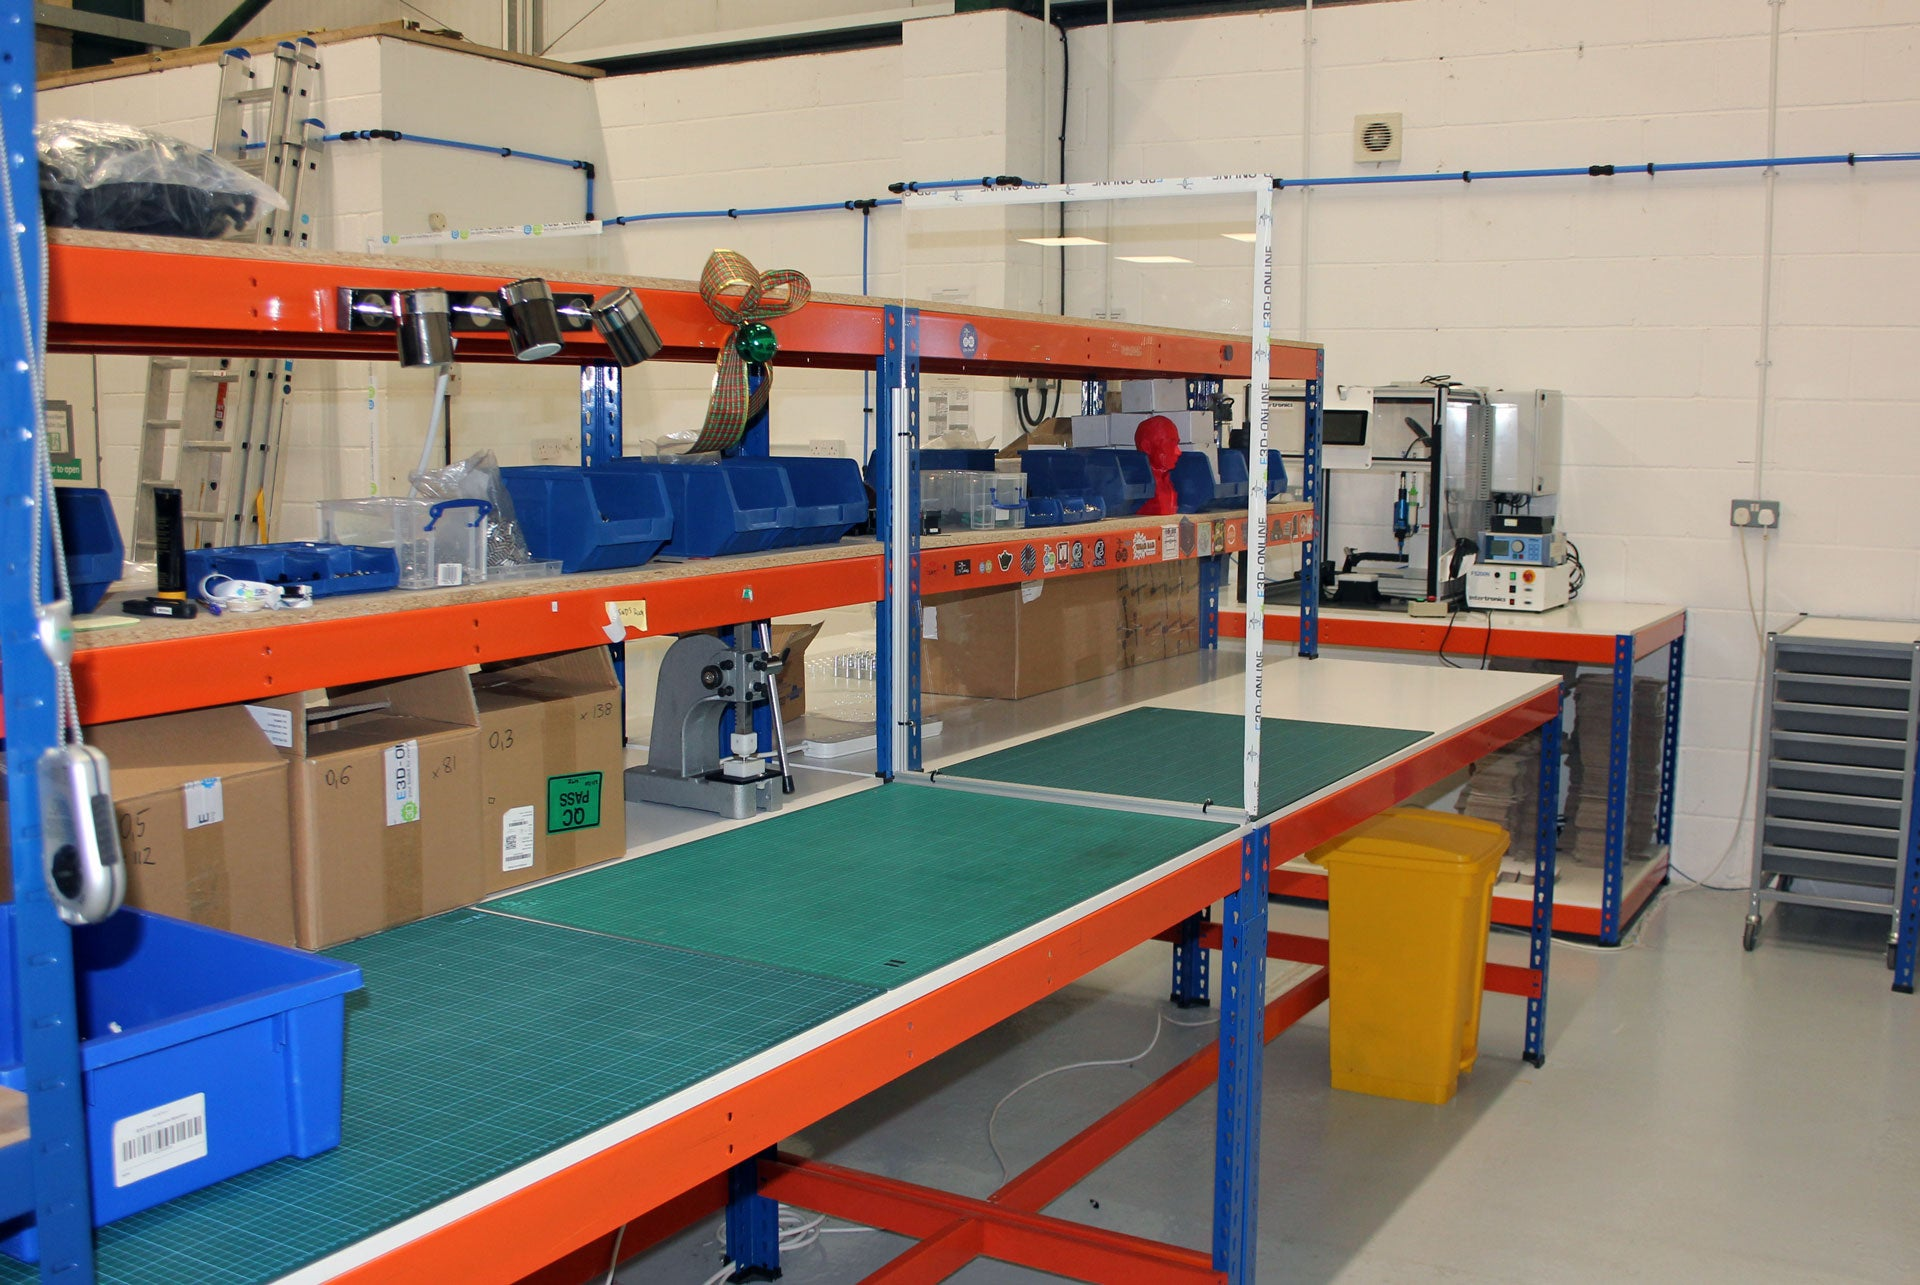 manufacturing production workfloor